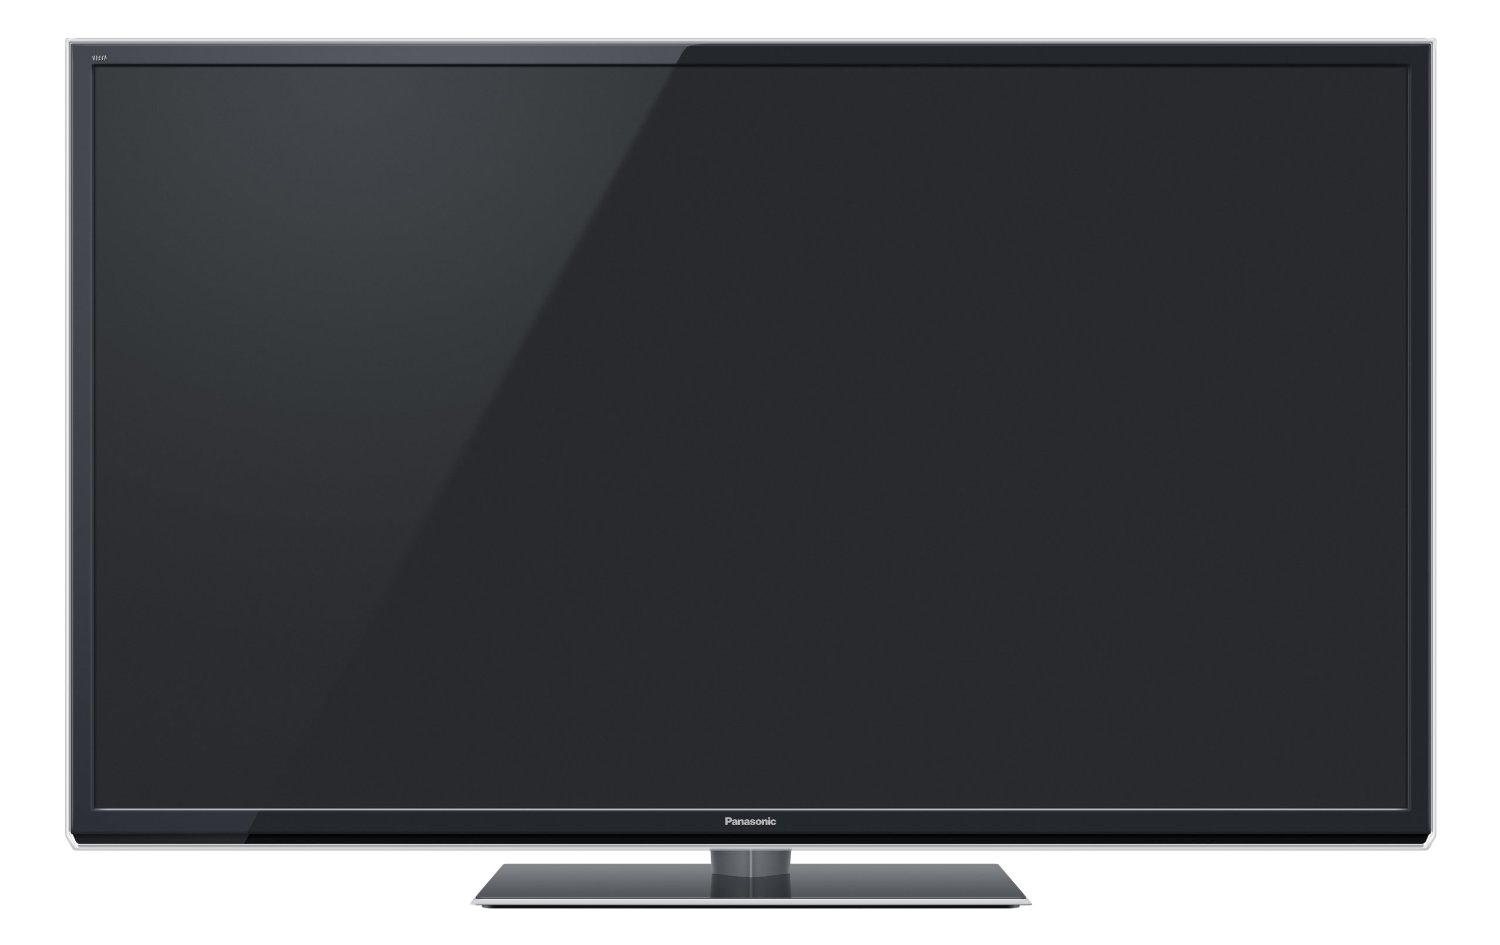 panasonic viera 50 inch series tc p50st50 review. Black Bedroom Furniture Sets. Home Design Ideas